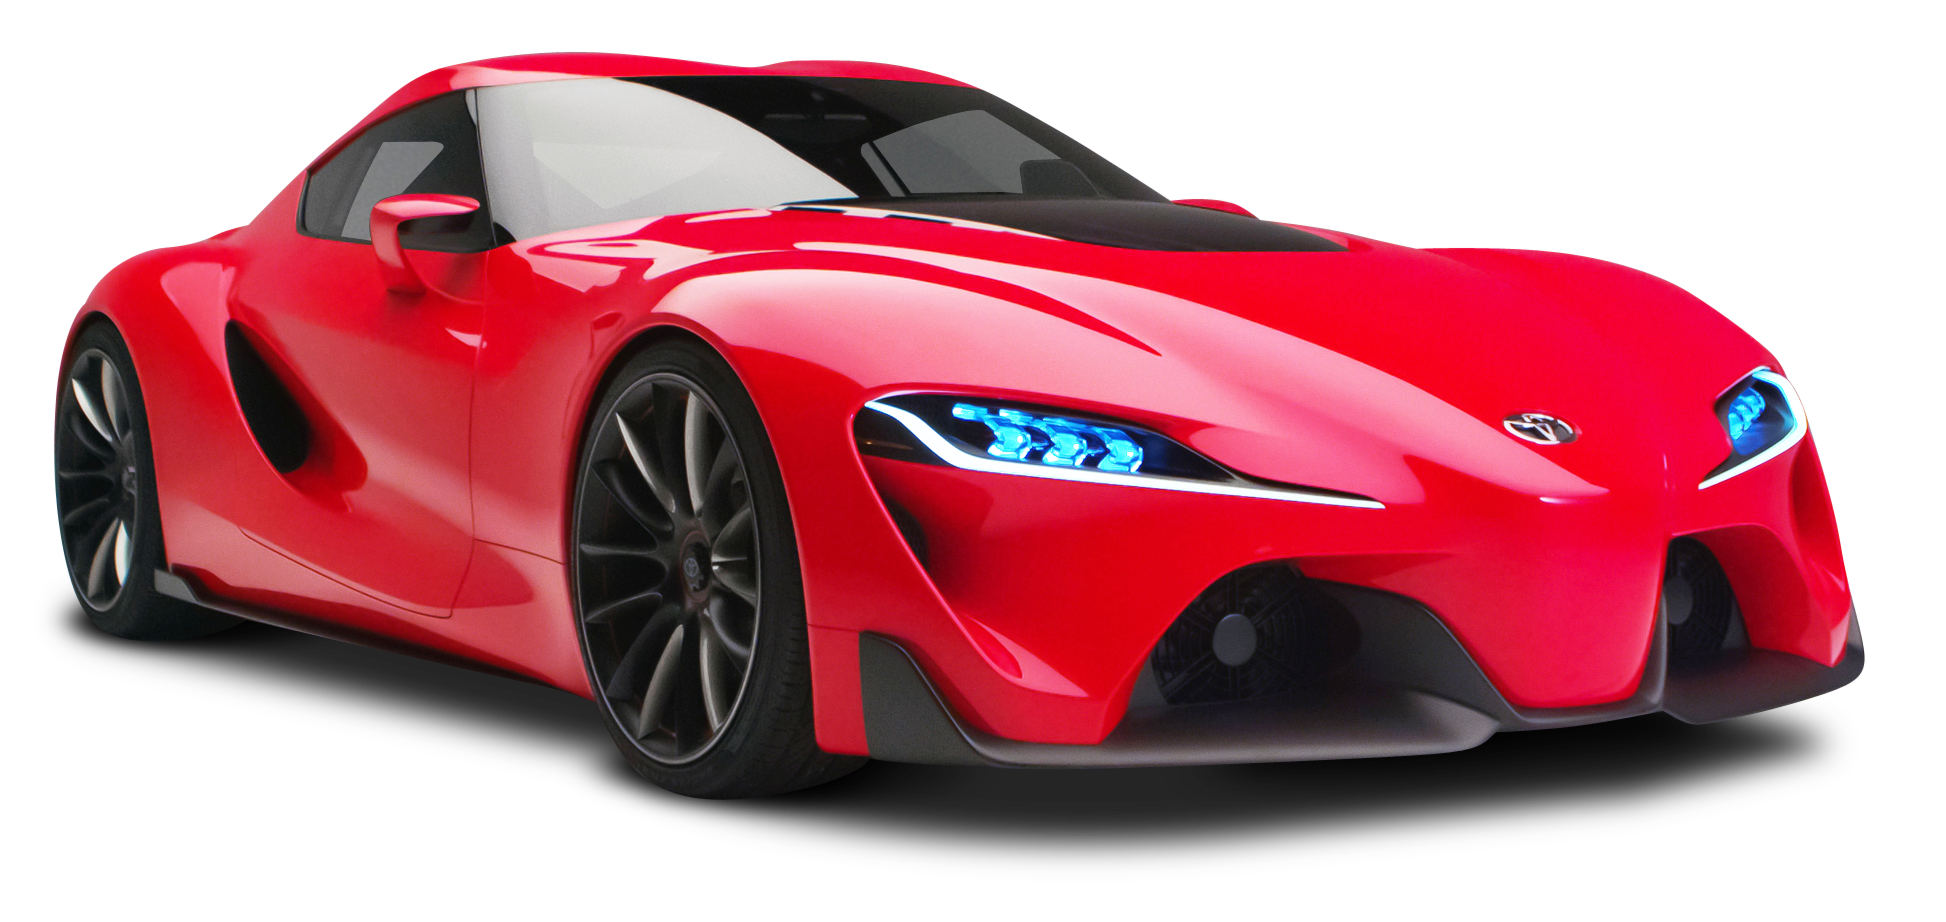 Red Toyota Ft1 Sports Car Png Image Pngpix